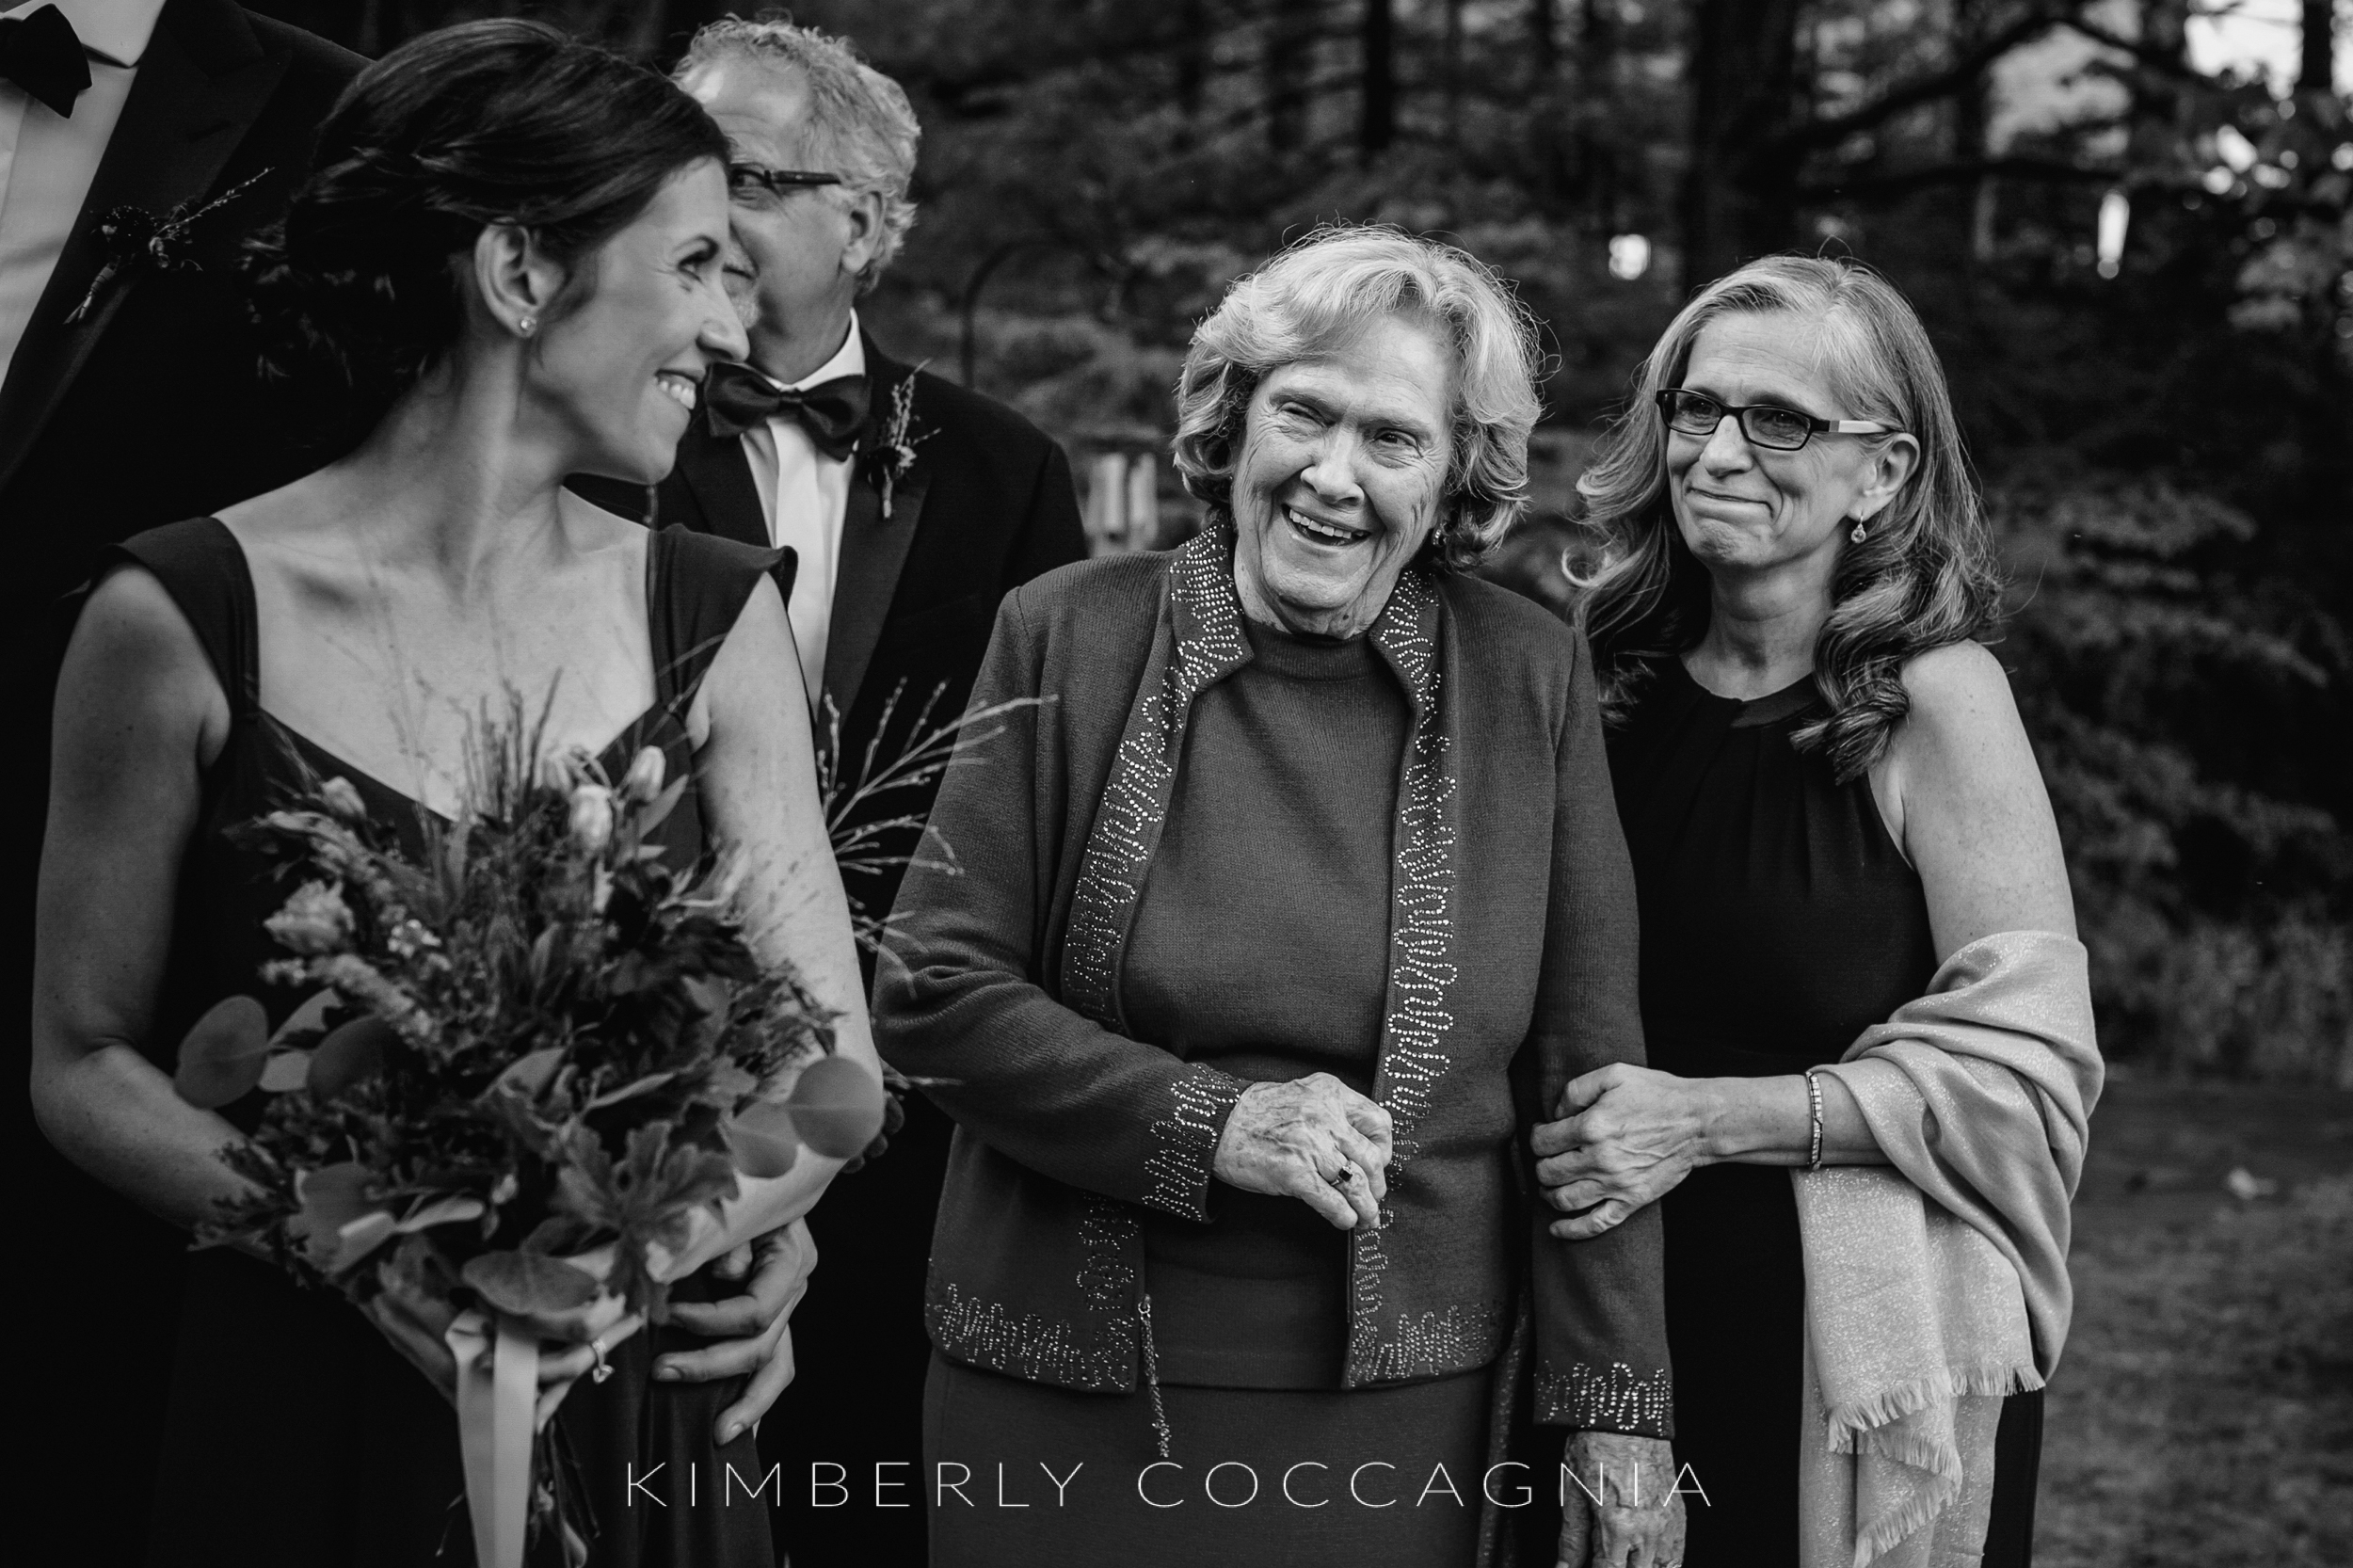 Kimberly+Coccagnia+Hudson+Valley+Wedding+Photographer-40.JPG